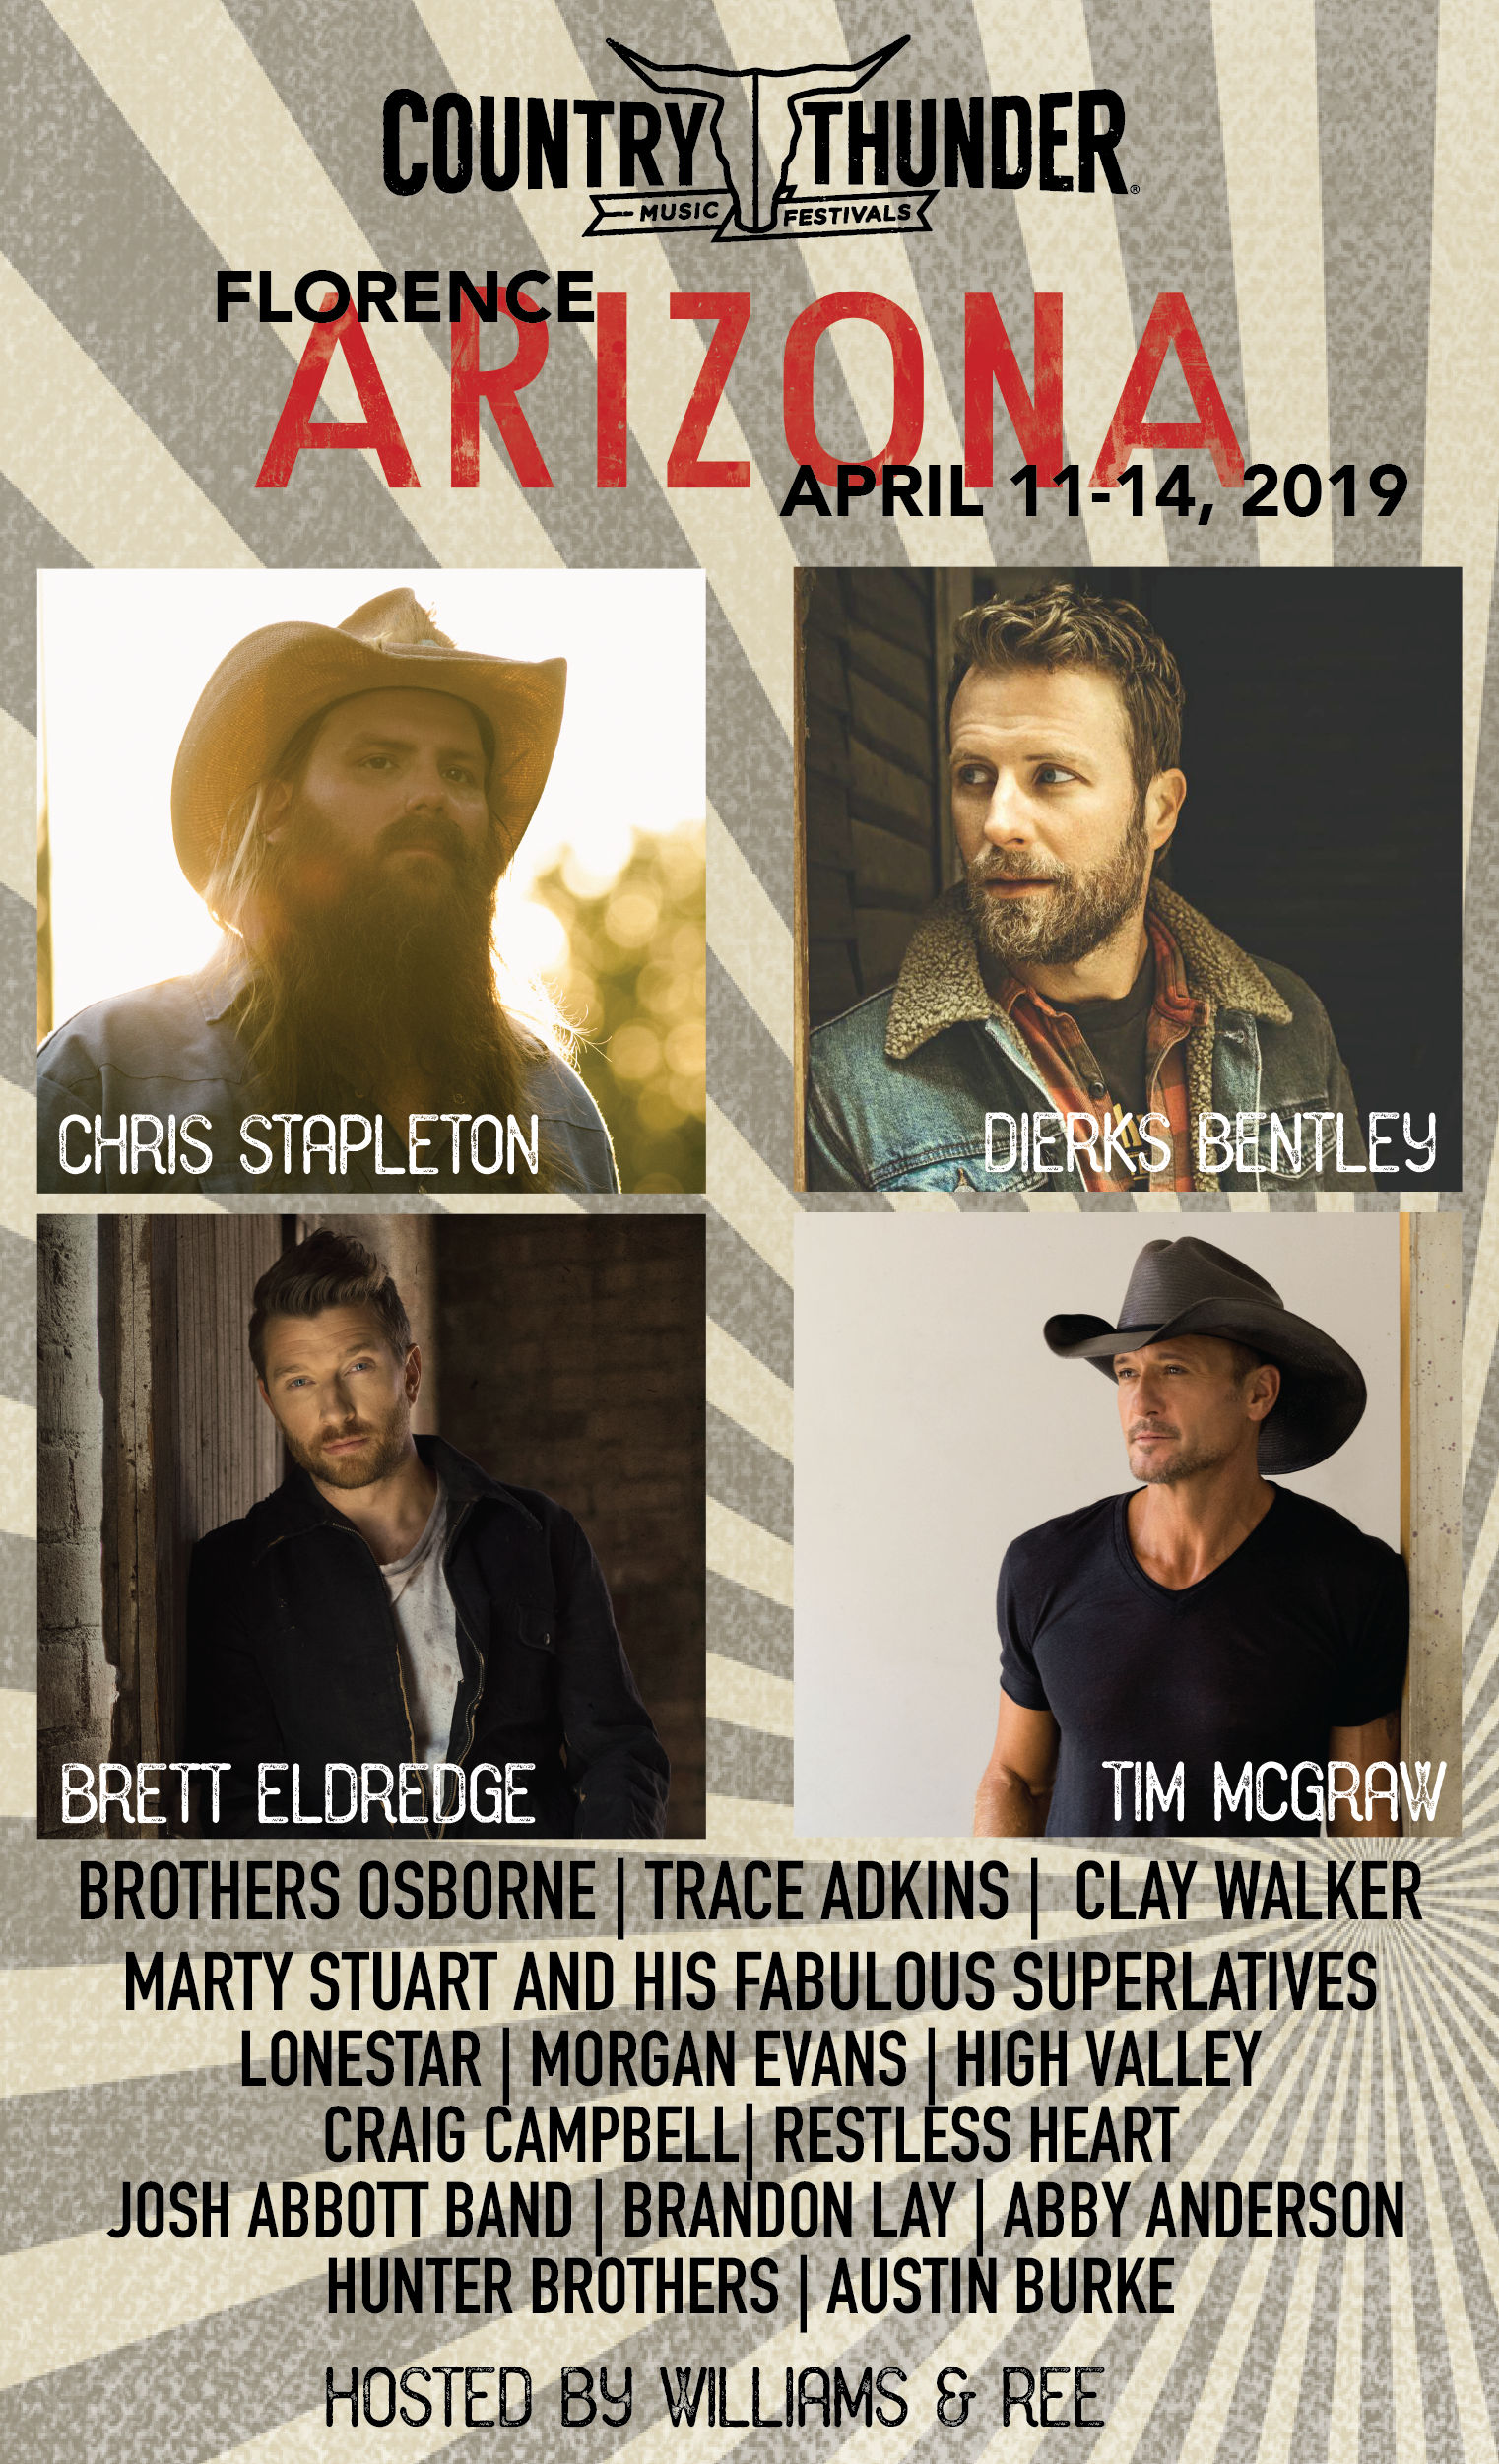 Country Thunder Music Festivals | 2911 Enterprises, Inc